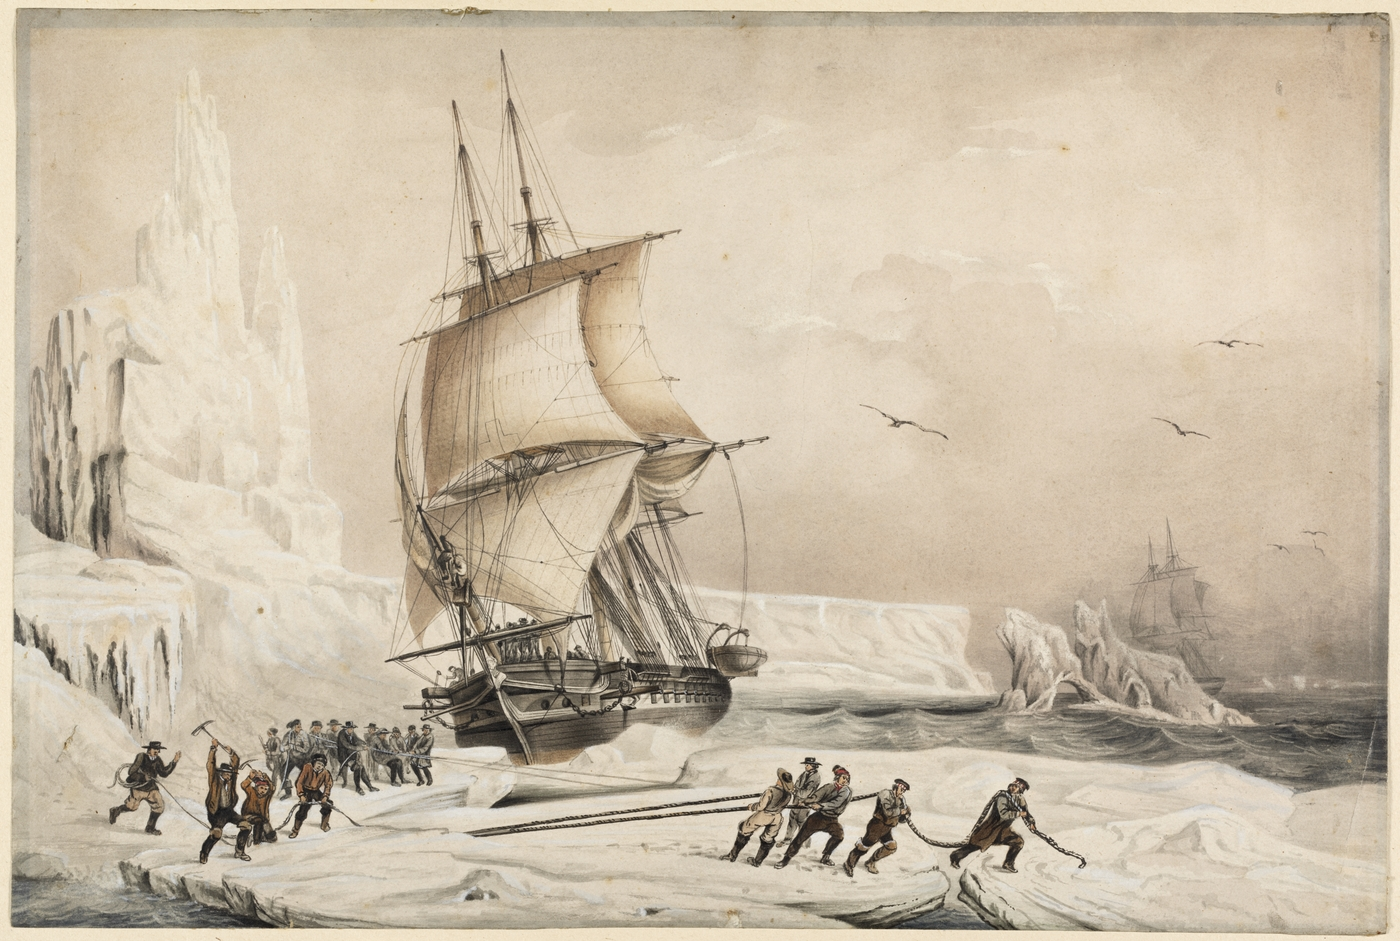 Les Corvettes L'Astrolabe Et La Zelee caught in Antarctic ice, watercolour by A. Mayer. (1838)